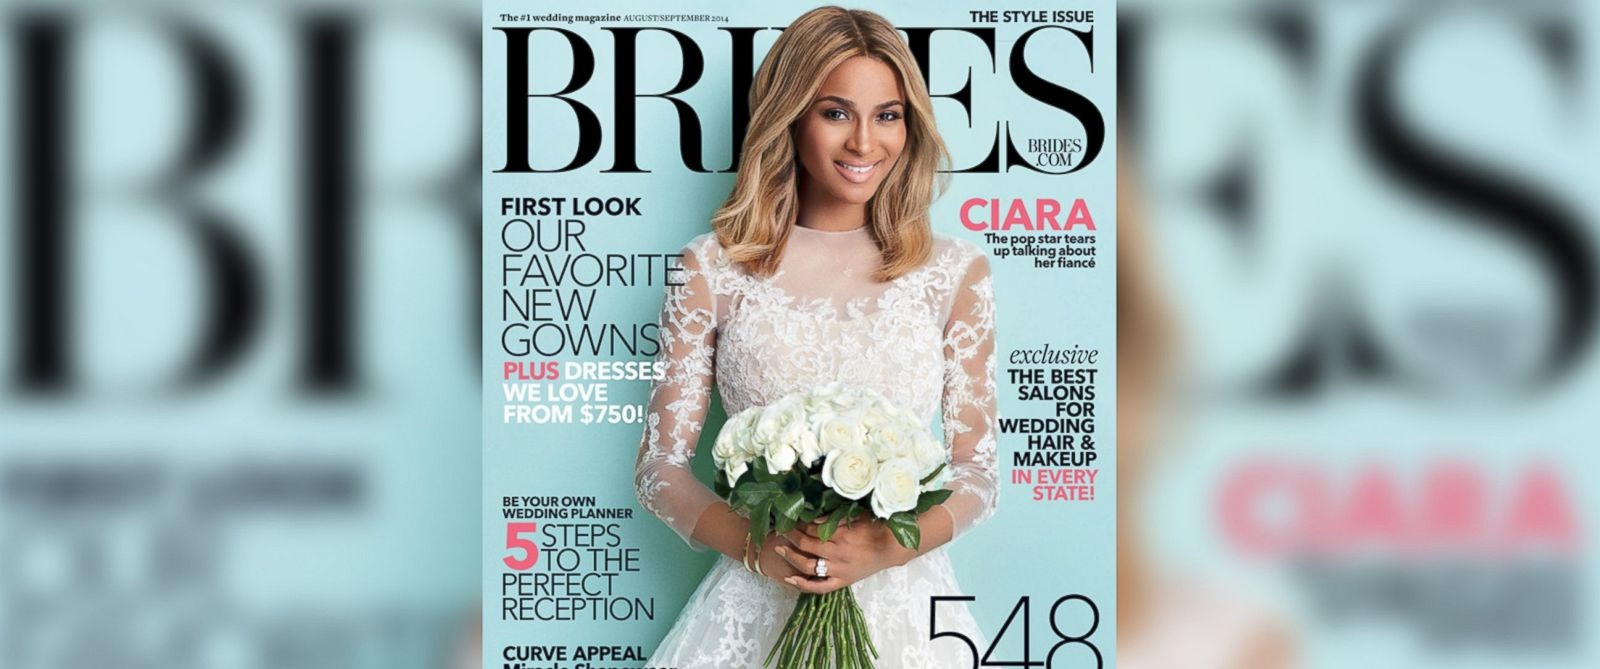 PHOTO: Singer Ciara appears on the cover of the August/September 2014 issue of Brides Magazine.